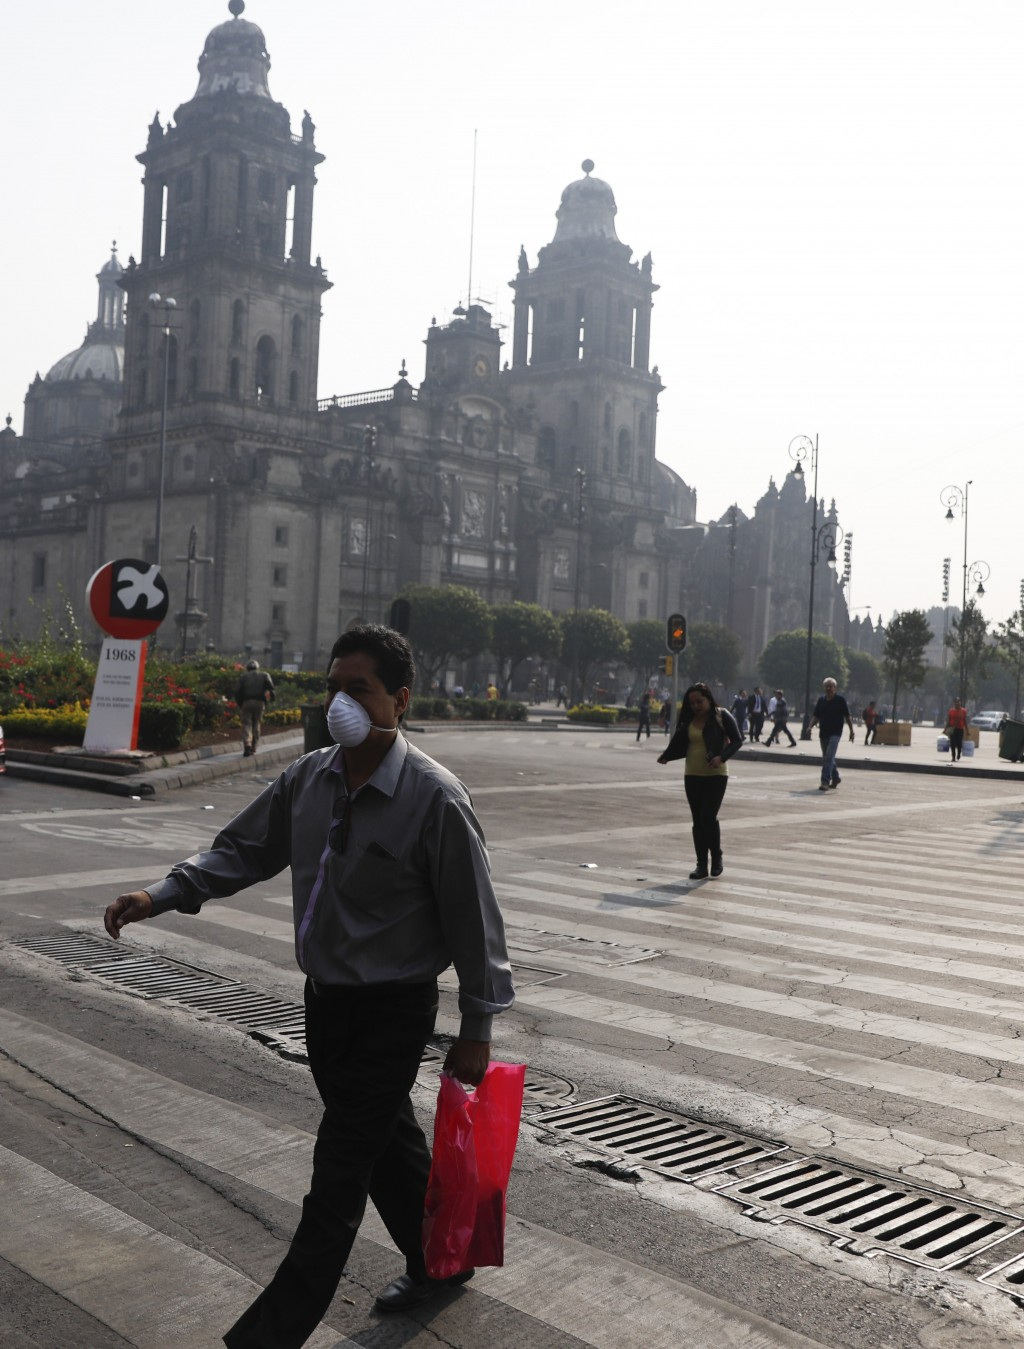 A man wearing a face mask crosses a street by the Metropolitan Cathedral, shrouded by haze, in the Zocalo, Mexico City's main square, Thursday, May 16